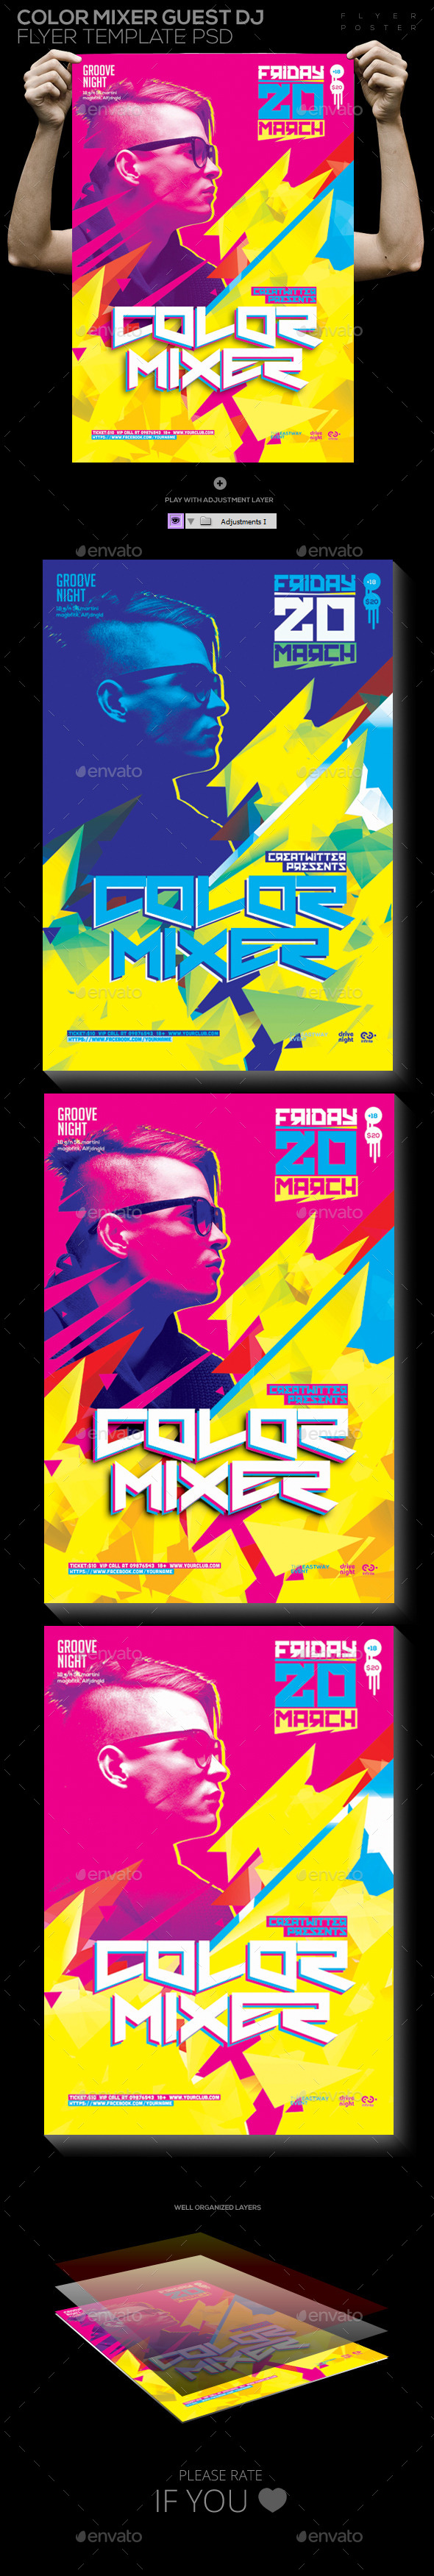 Color Mixer Guest Dj Template PSD Poster/ Flyer - Clubs & Parties Events